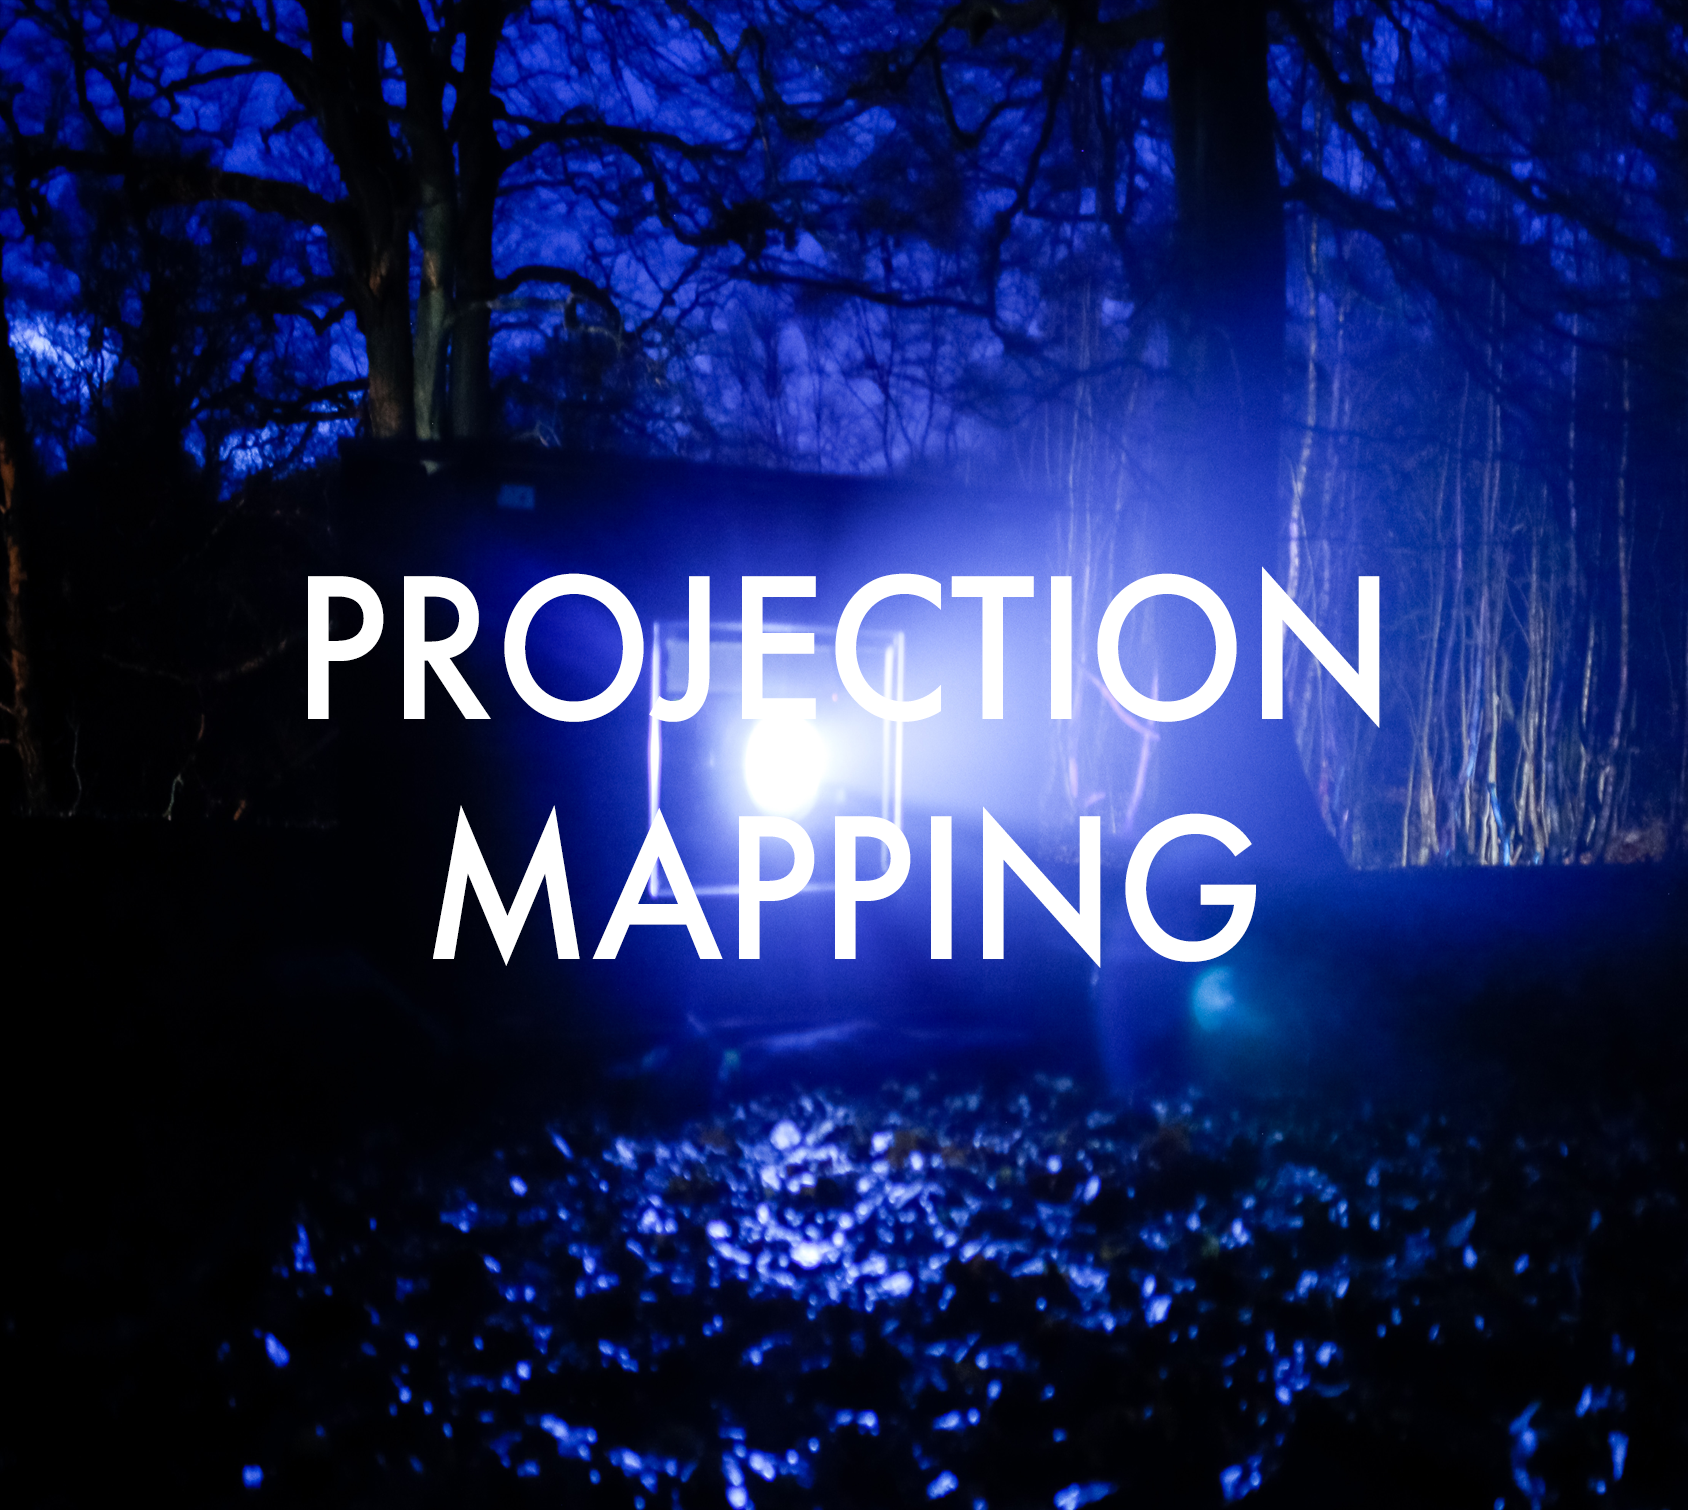 Projectio Mapping.+